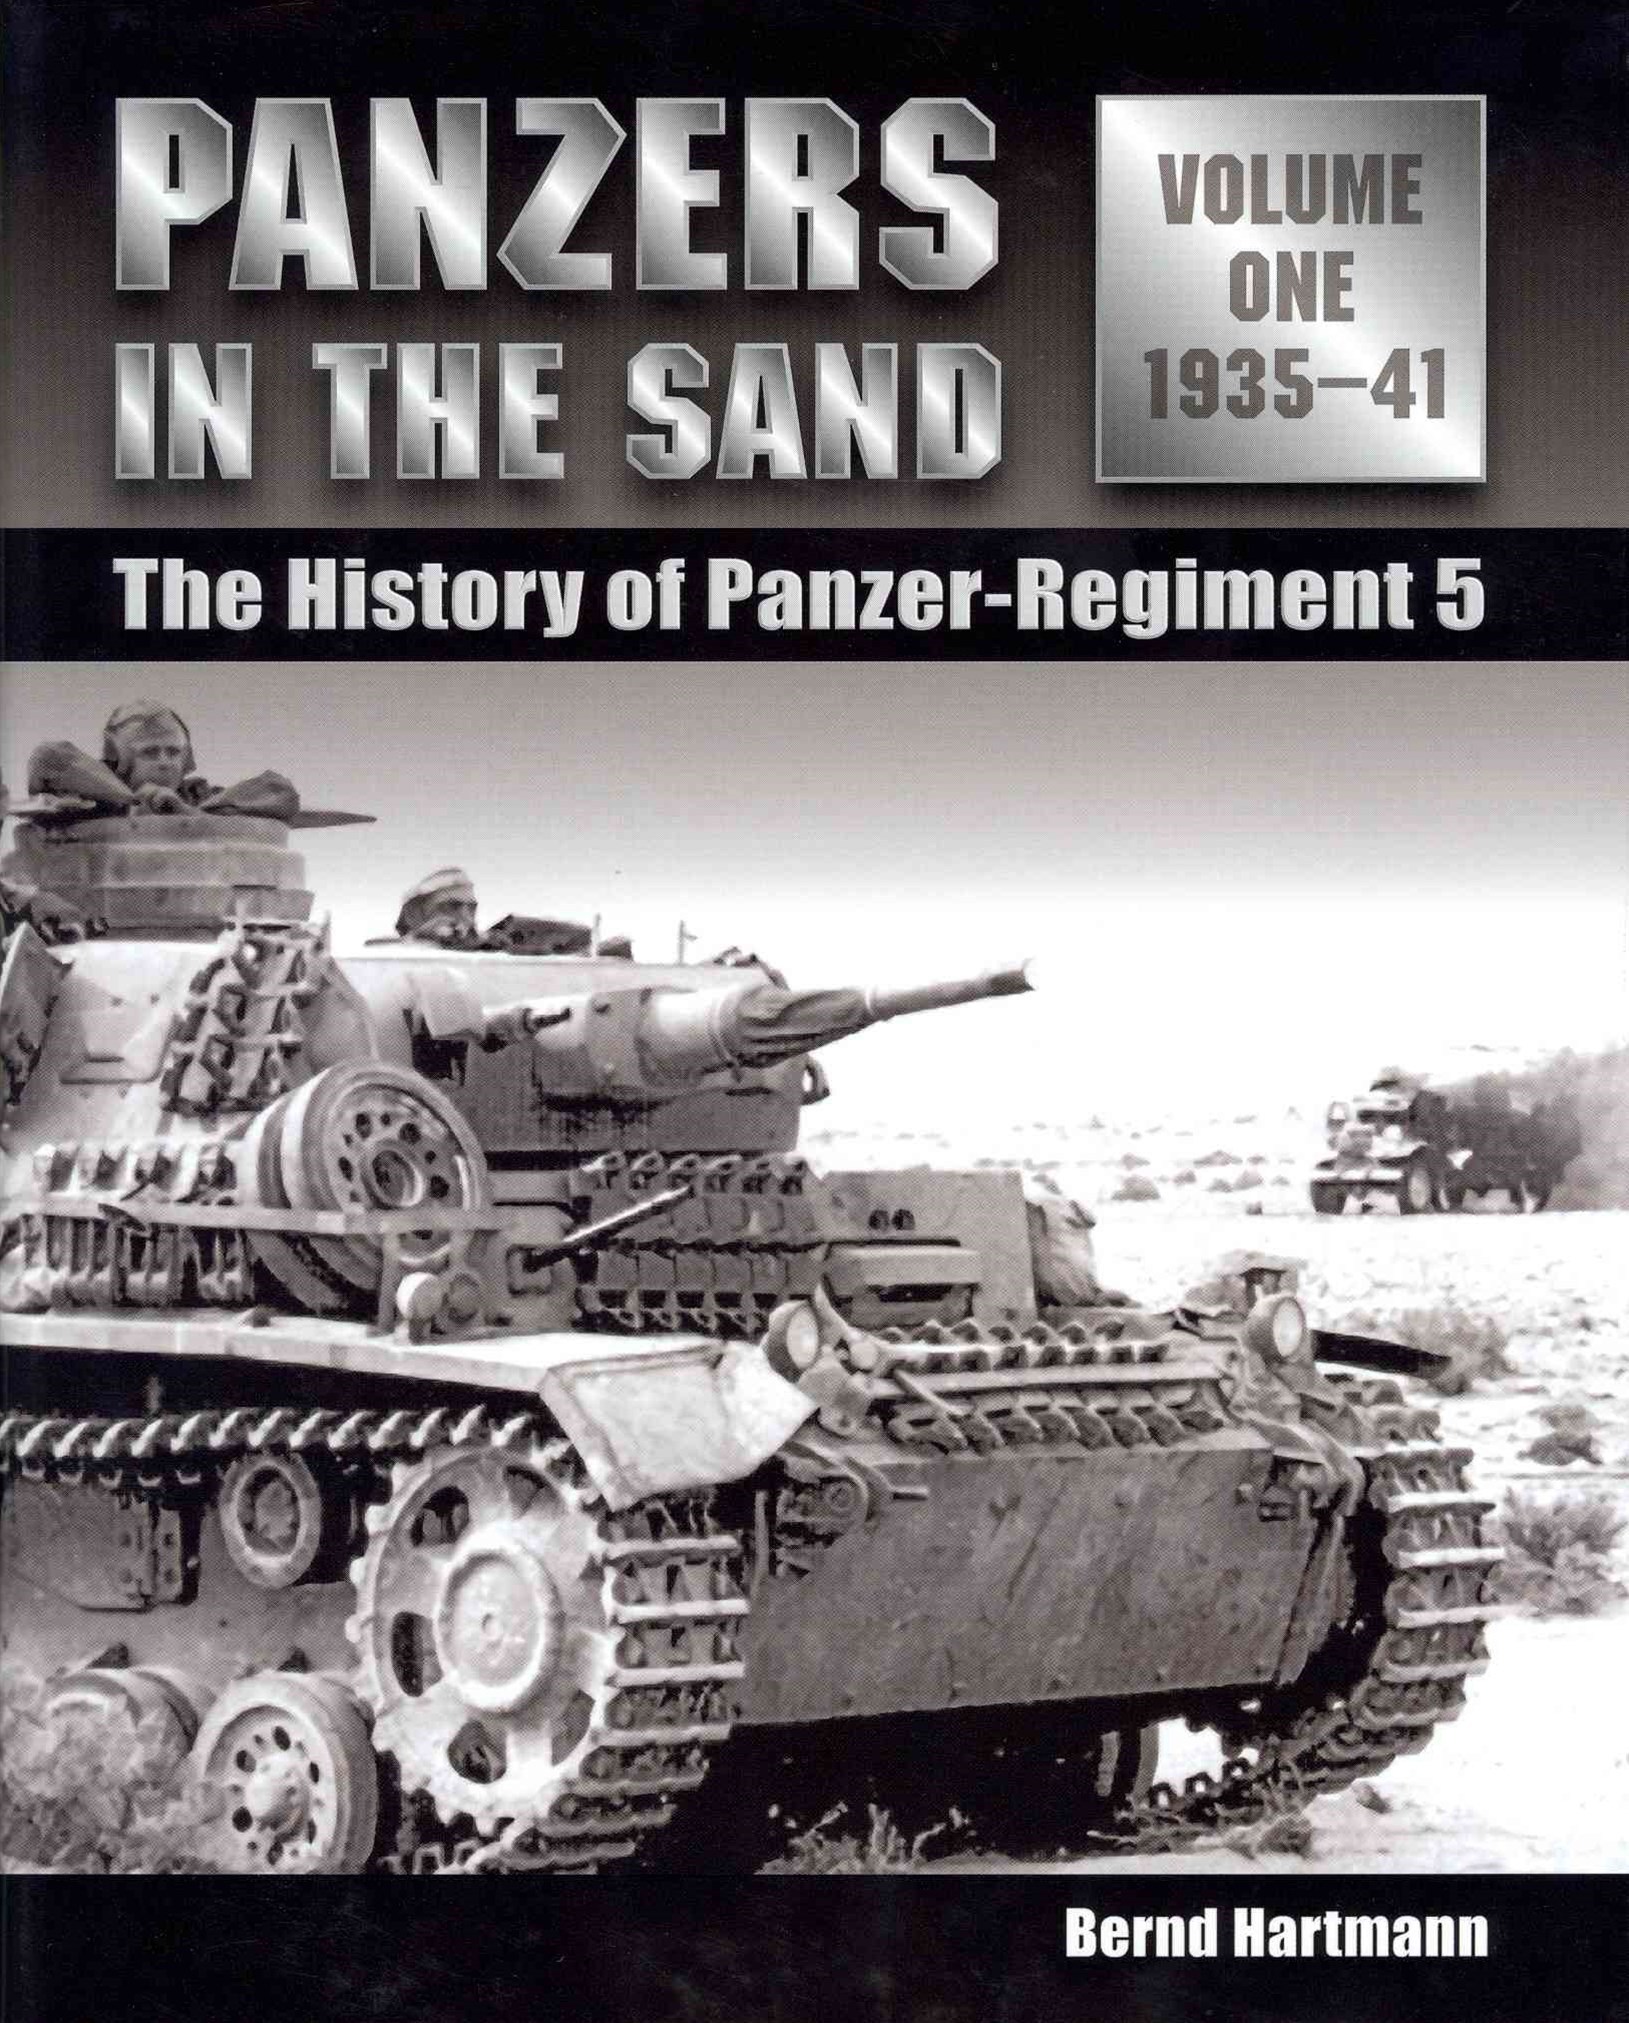 Panzers in the Sand Volume One: the History of the Panzer Regiment 5